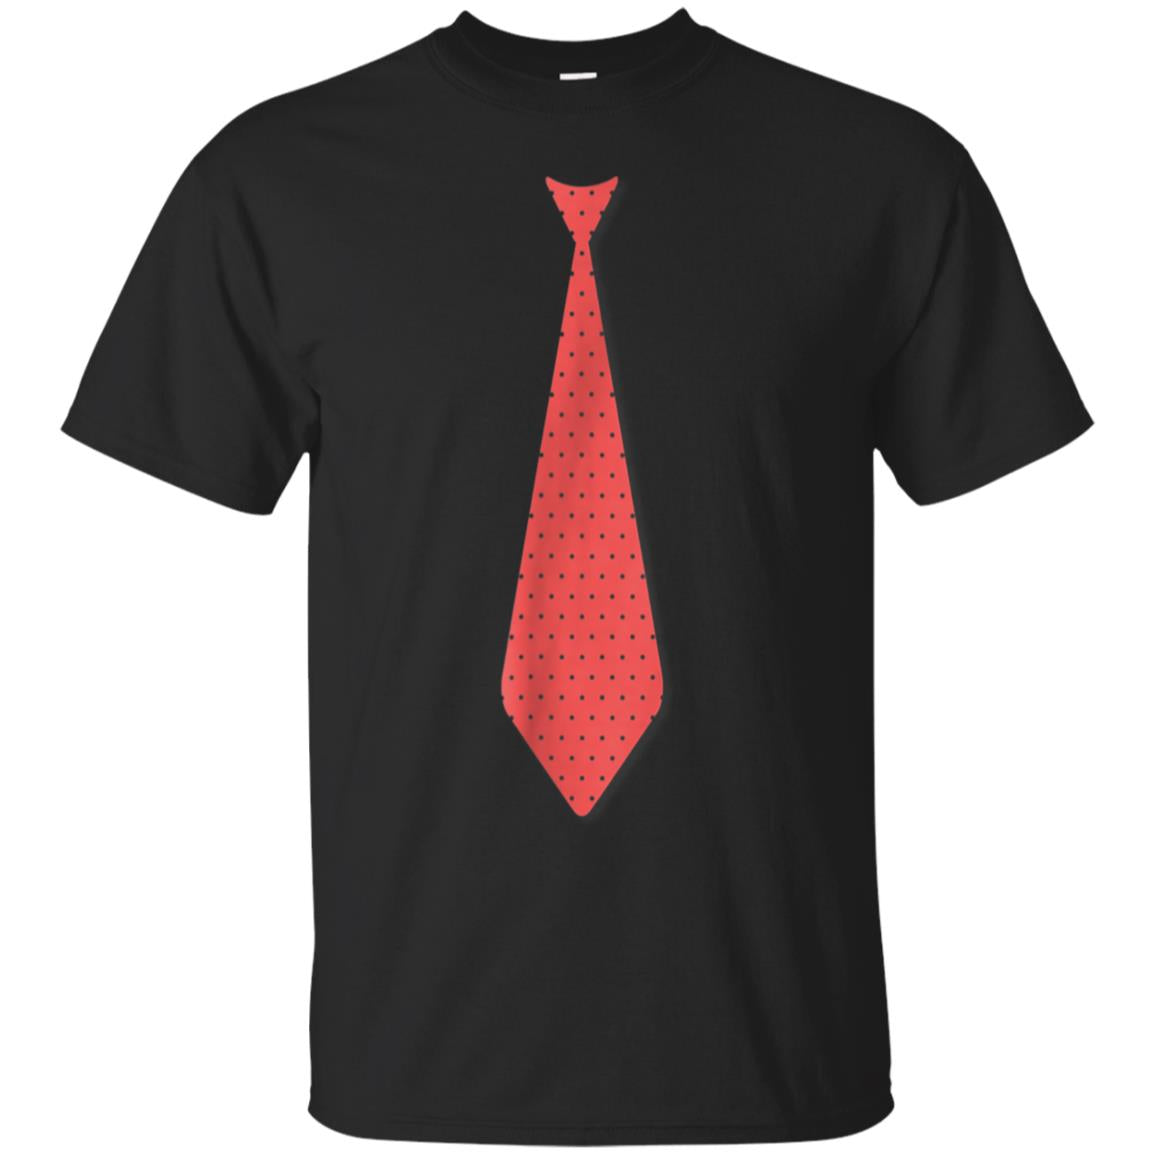 I CAN'T AFFORD A TIE Funny Fake Tie Cartoon T-Shirt 99promocode